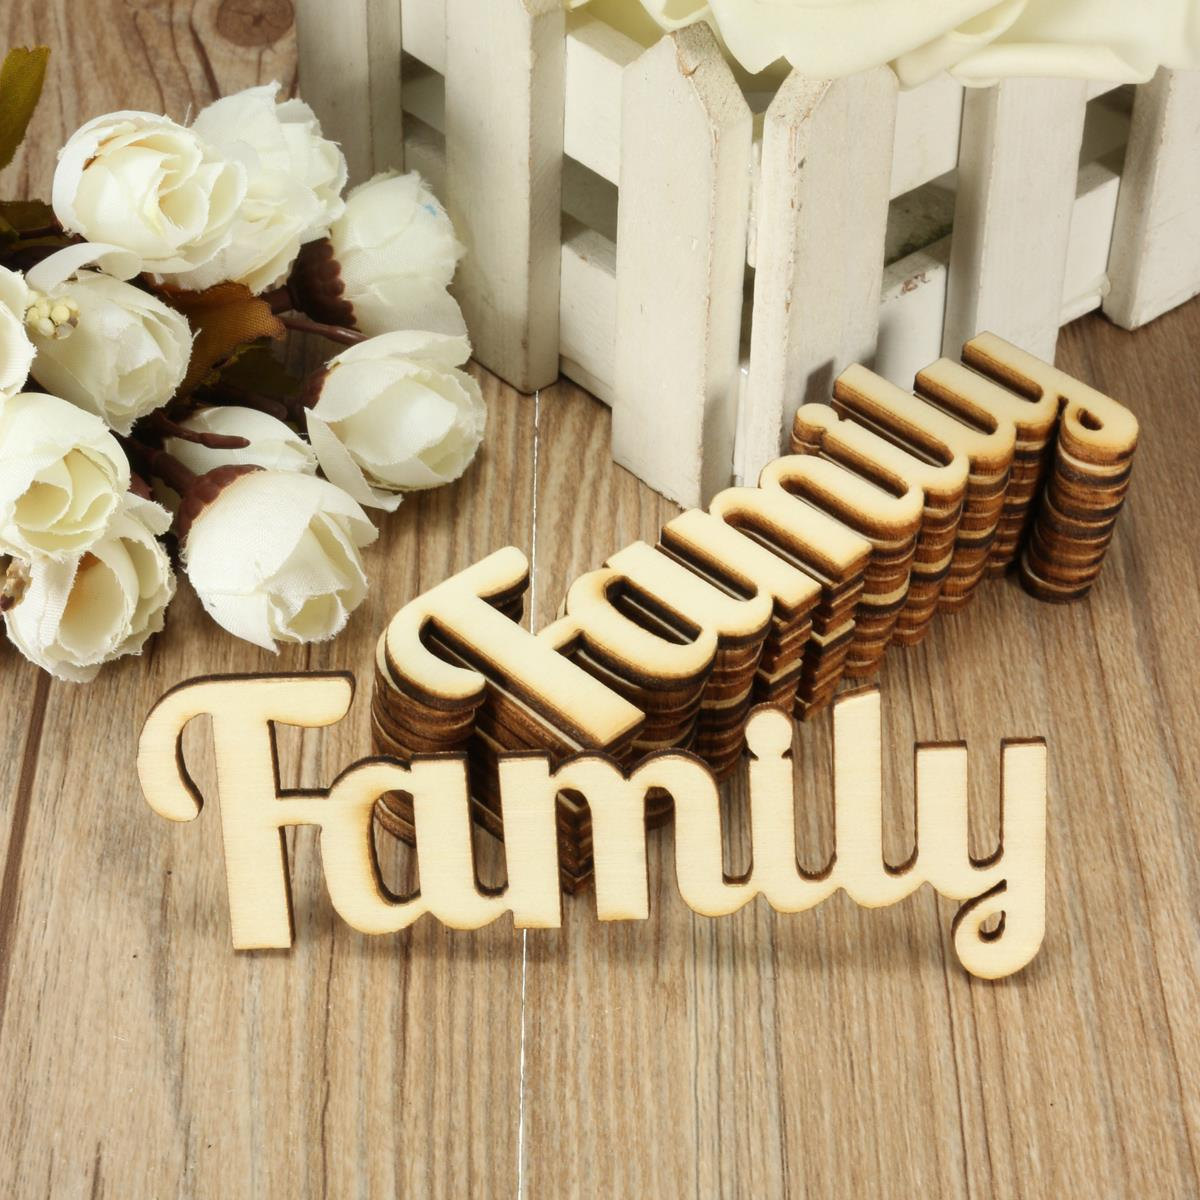 10pcs retro family wooden words script sign ornament plaque table stand decor crafts home design decorative crafts accessories